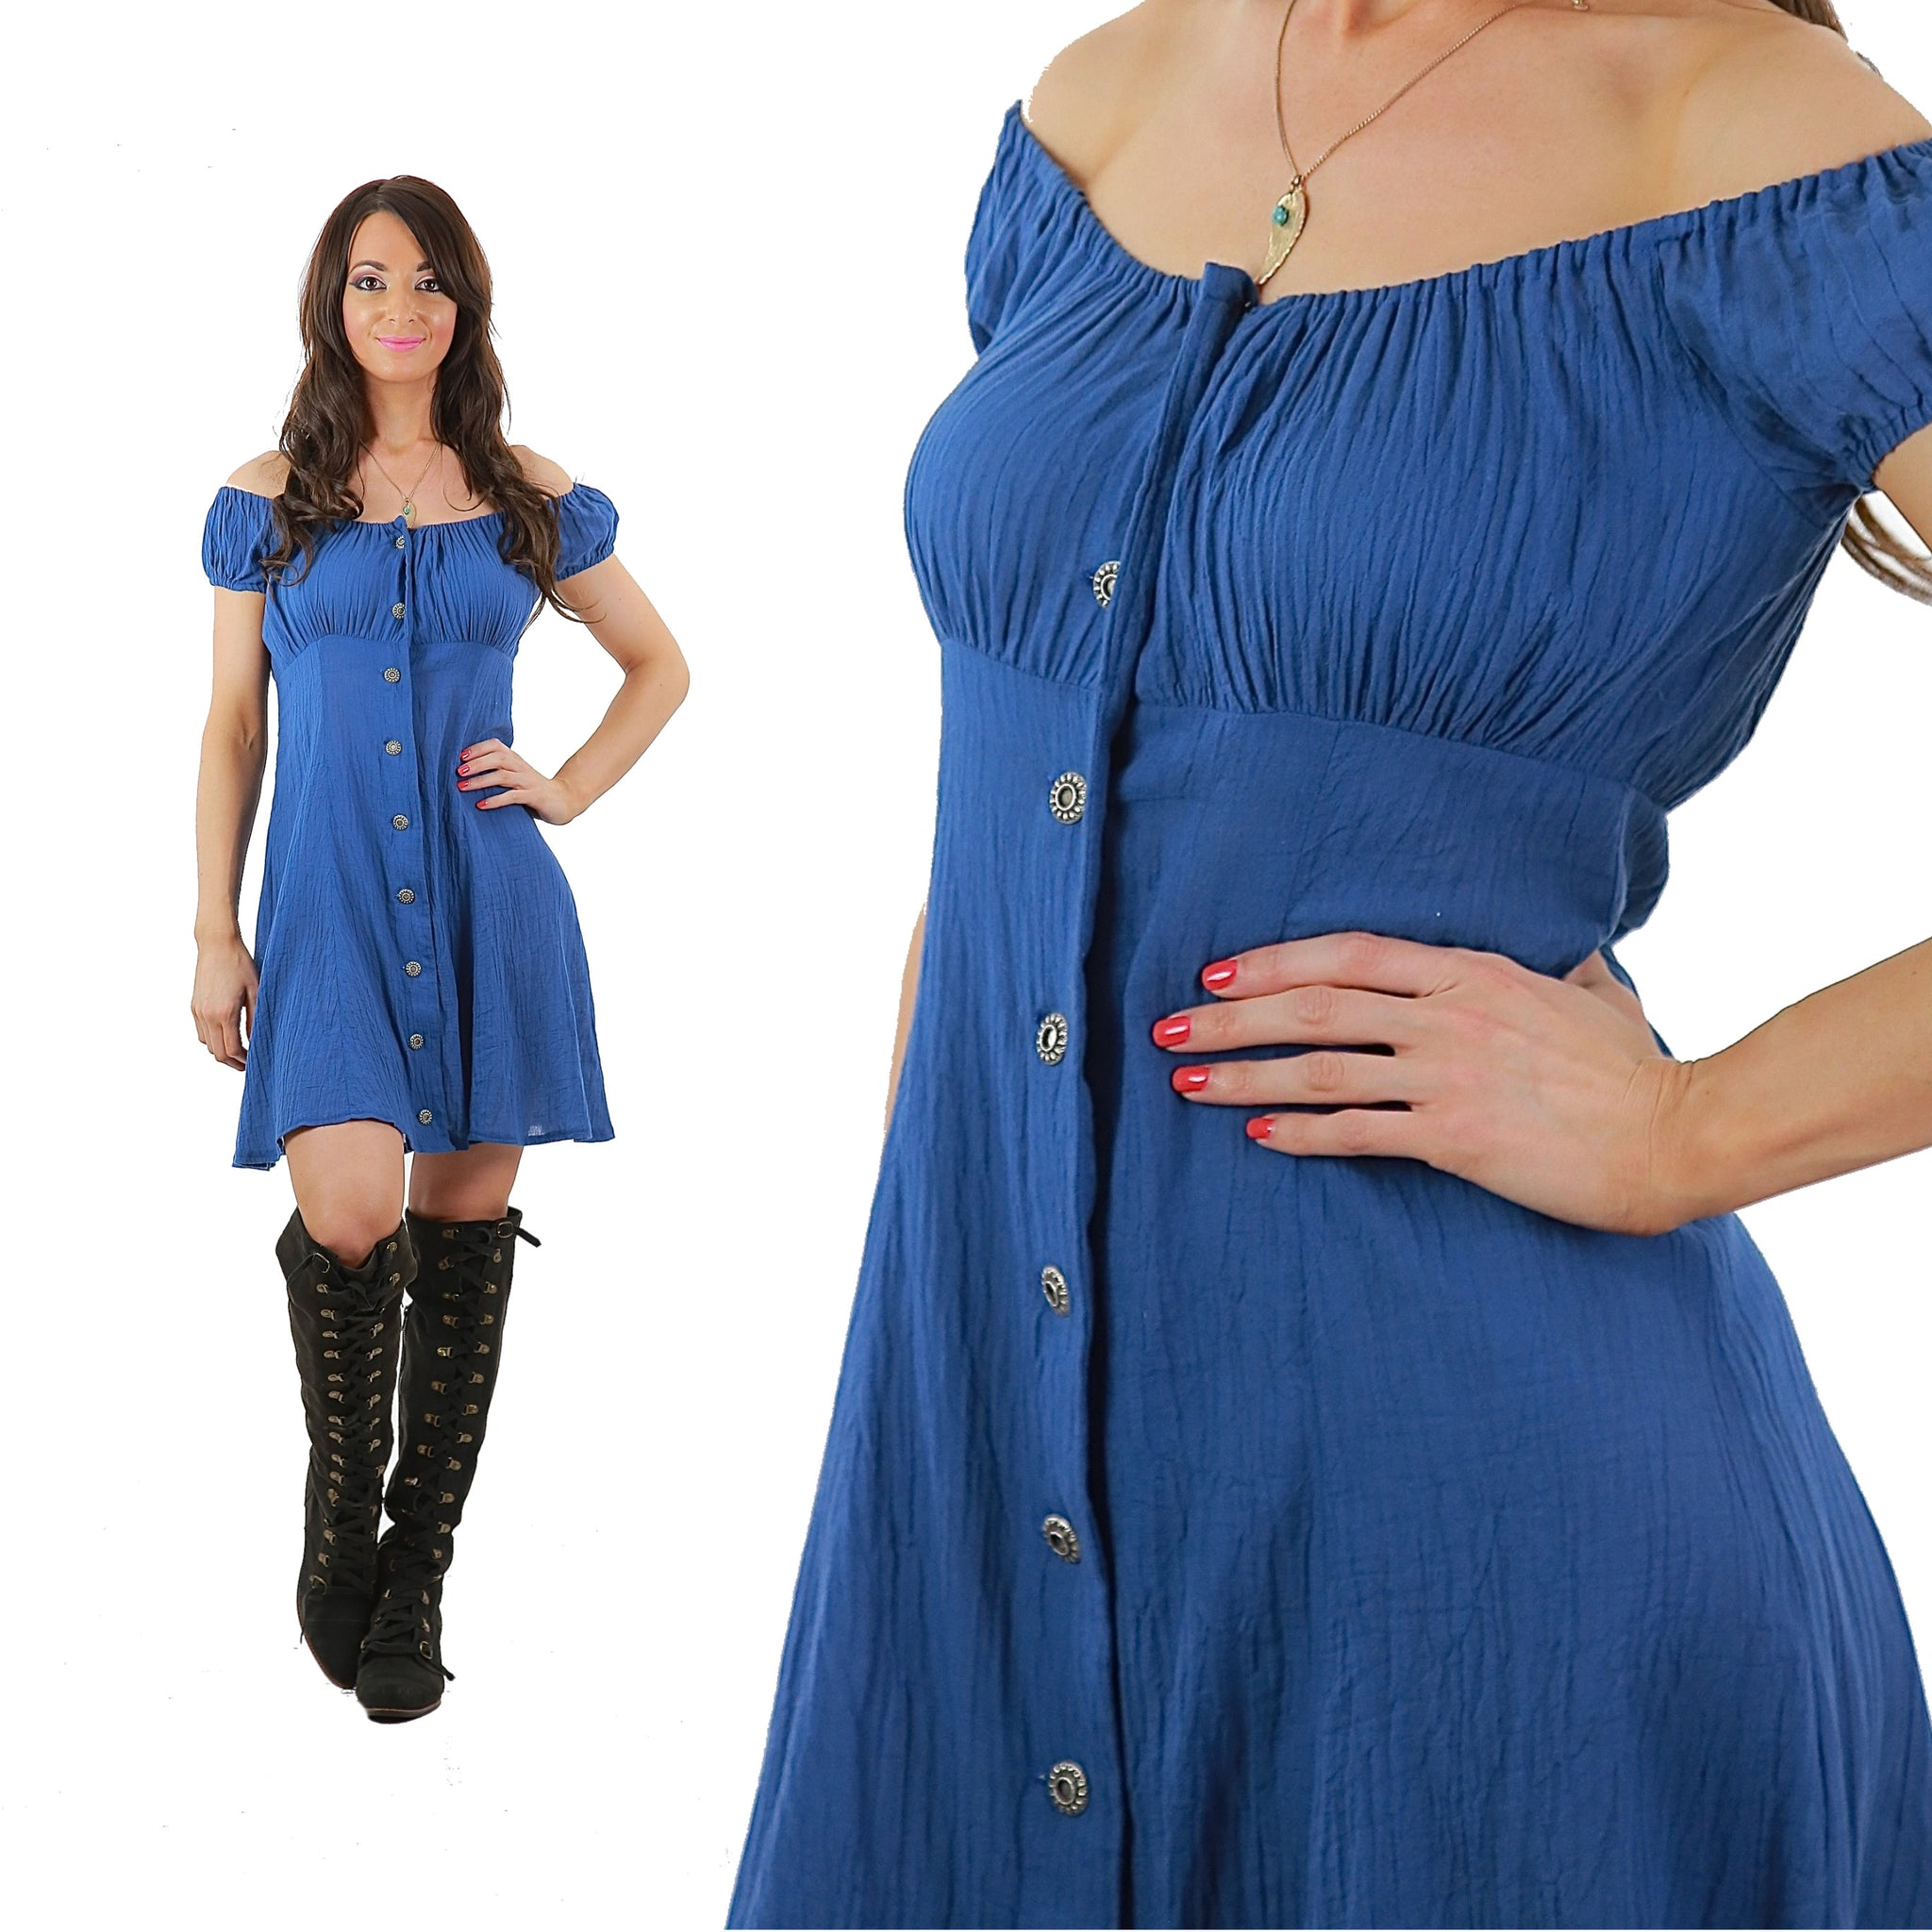 ca25ce1e99f Blue Peasant Dress Button down off shoulder boho festival mini sundress M